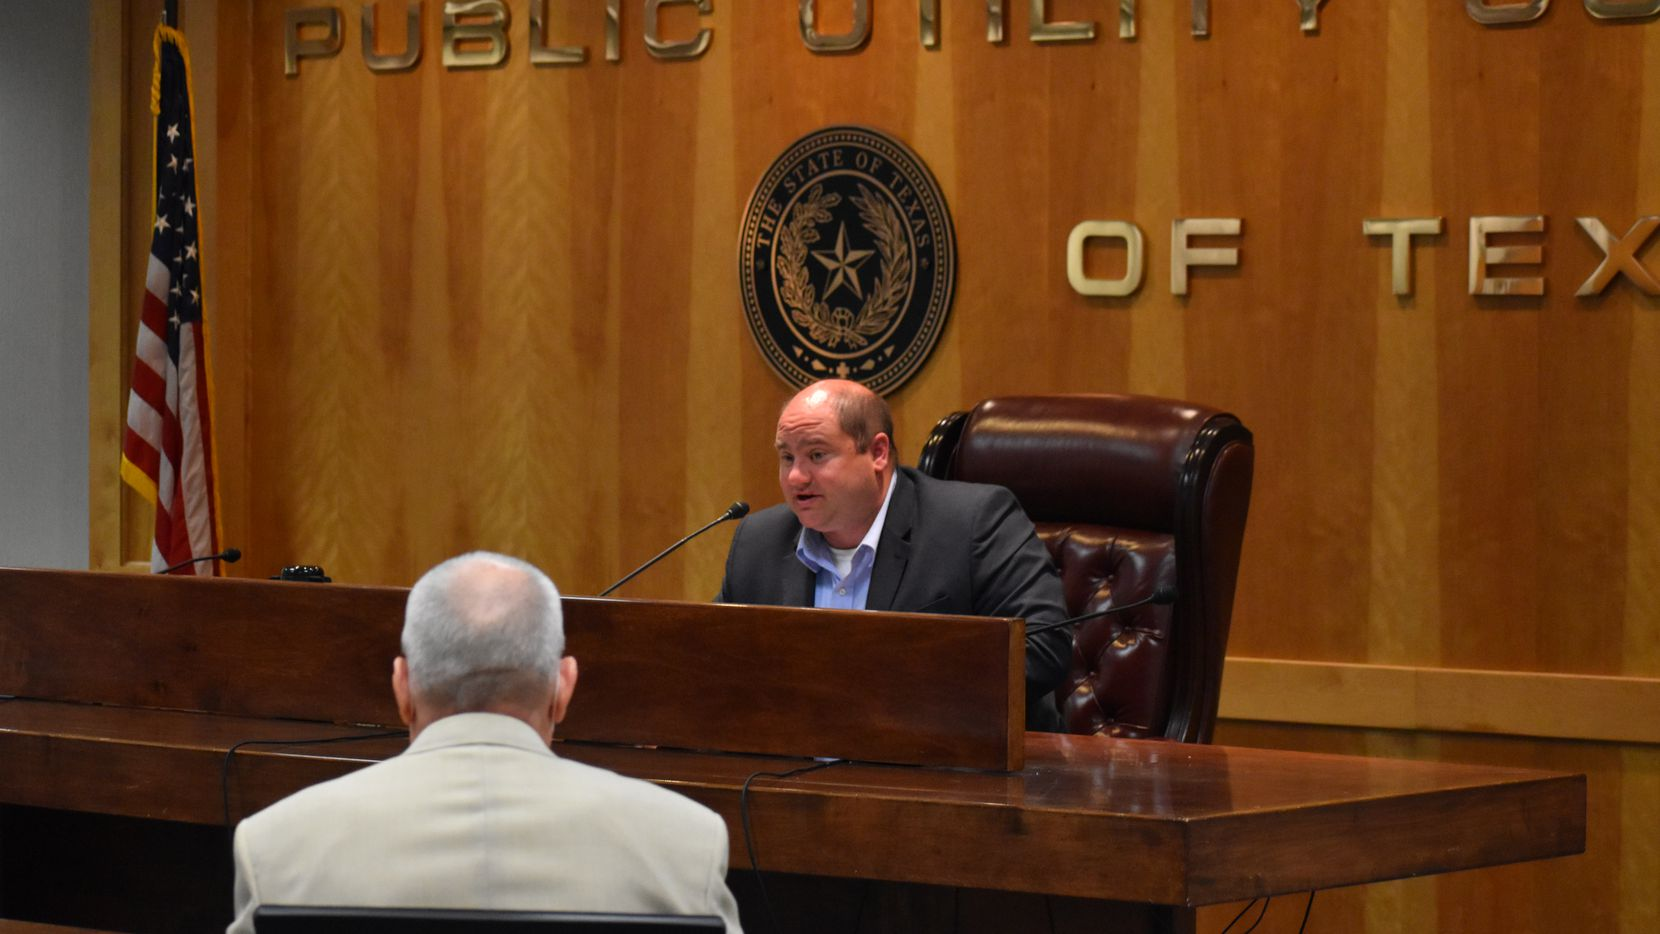 Ousted Public Utility Commission chairman Arthur D'Andrea will serve as chair until he is replaced by Gov. Greg Abbott. All three members were forced to resign.